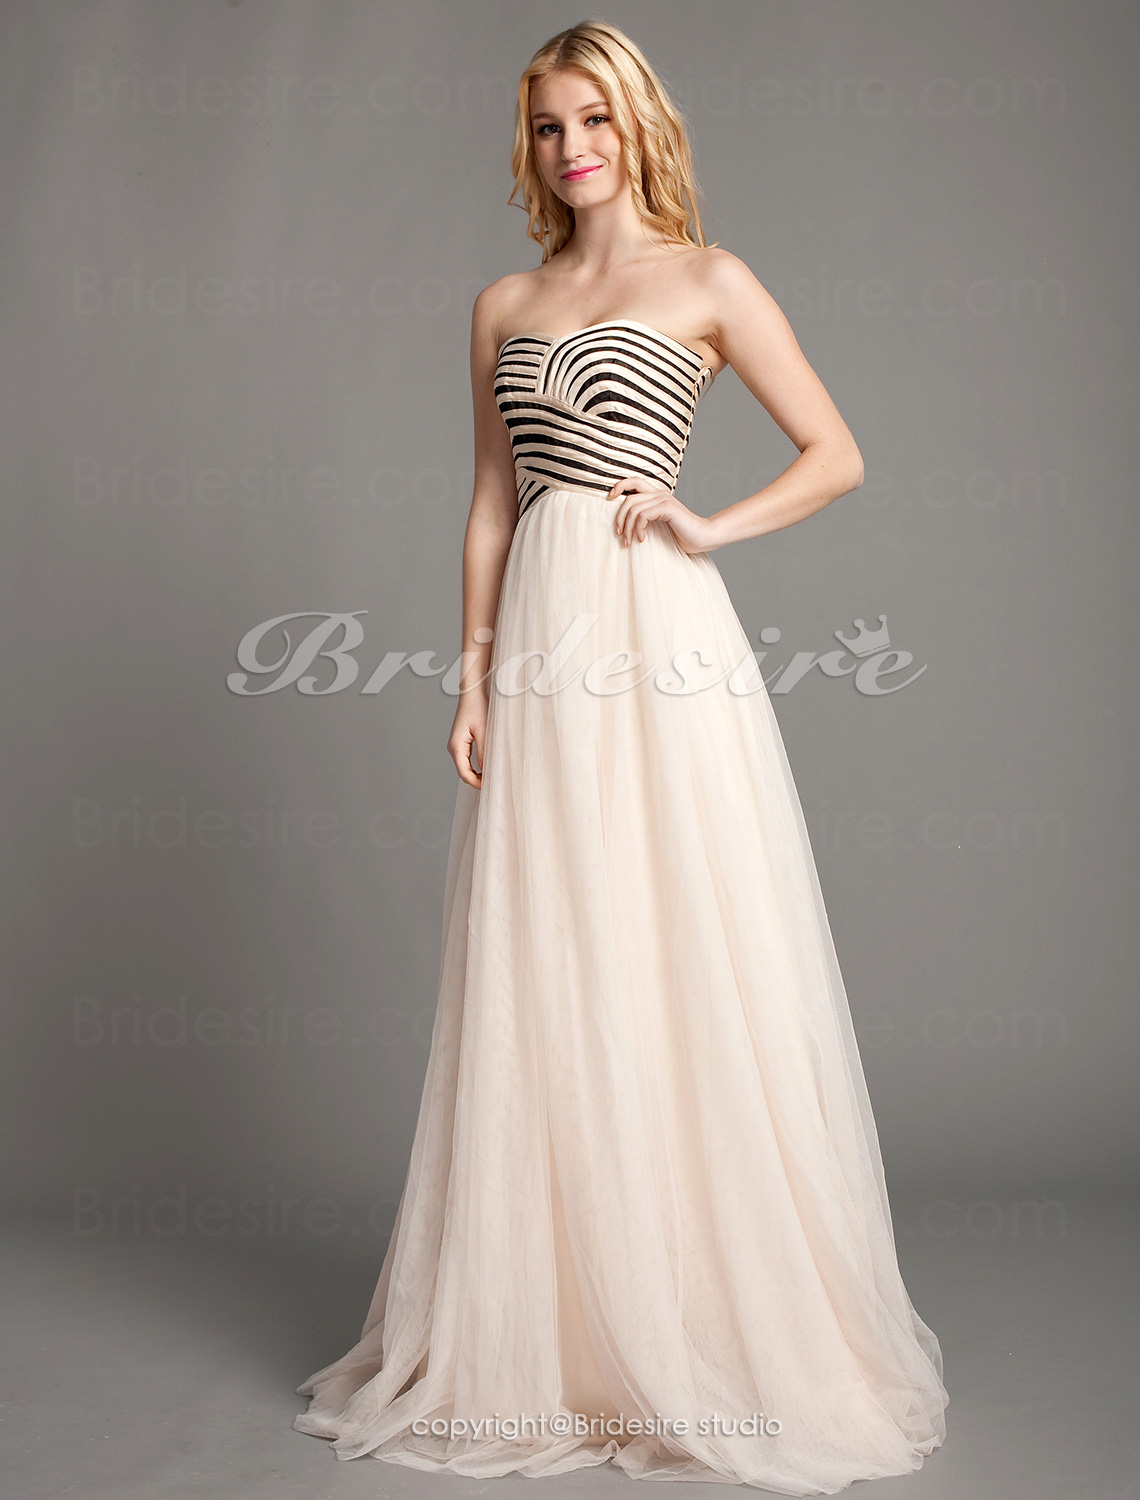 Sheath/Column Tulle Floor-length Sweetheart Evening Dress With C